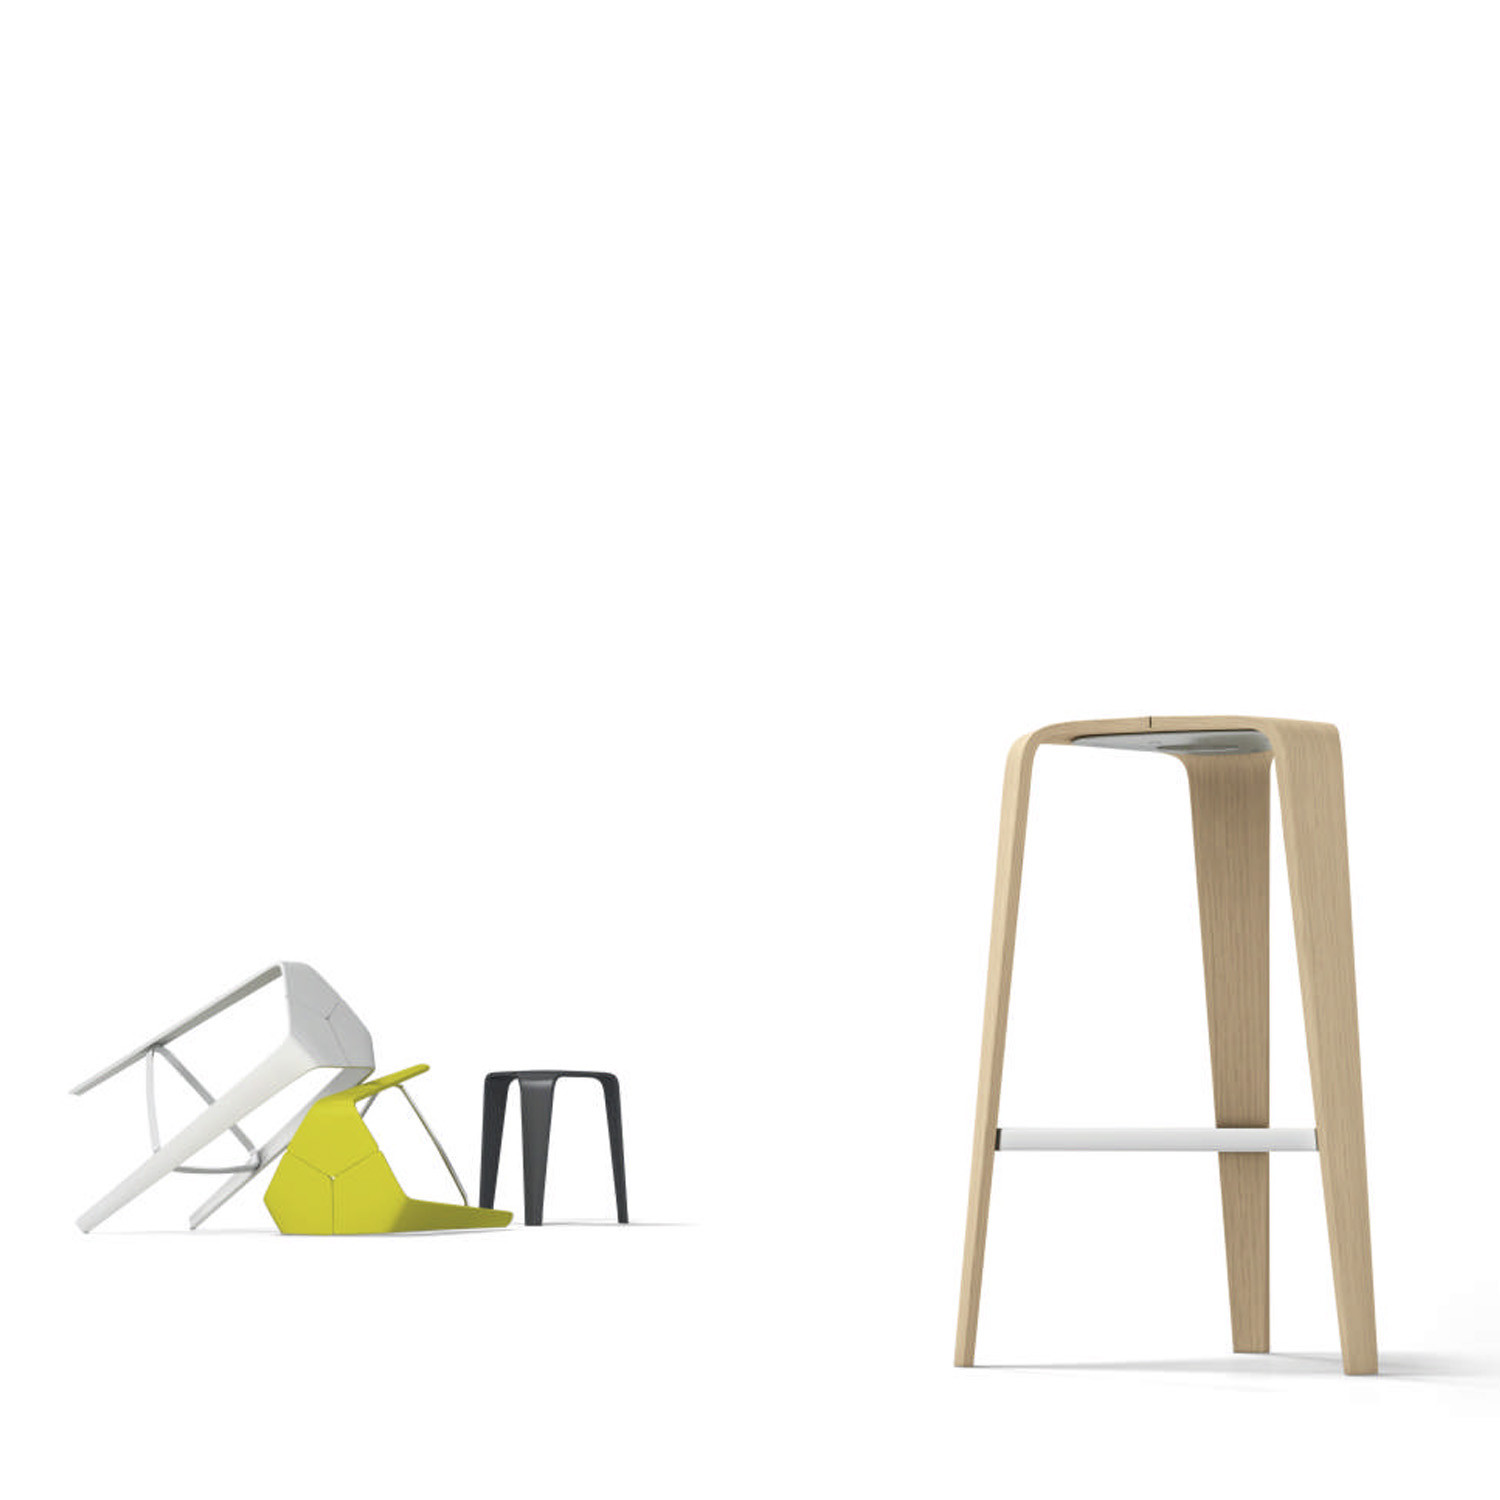 Hoc Stool Range is available in two heights